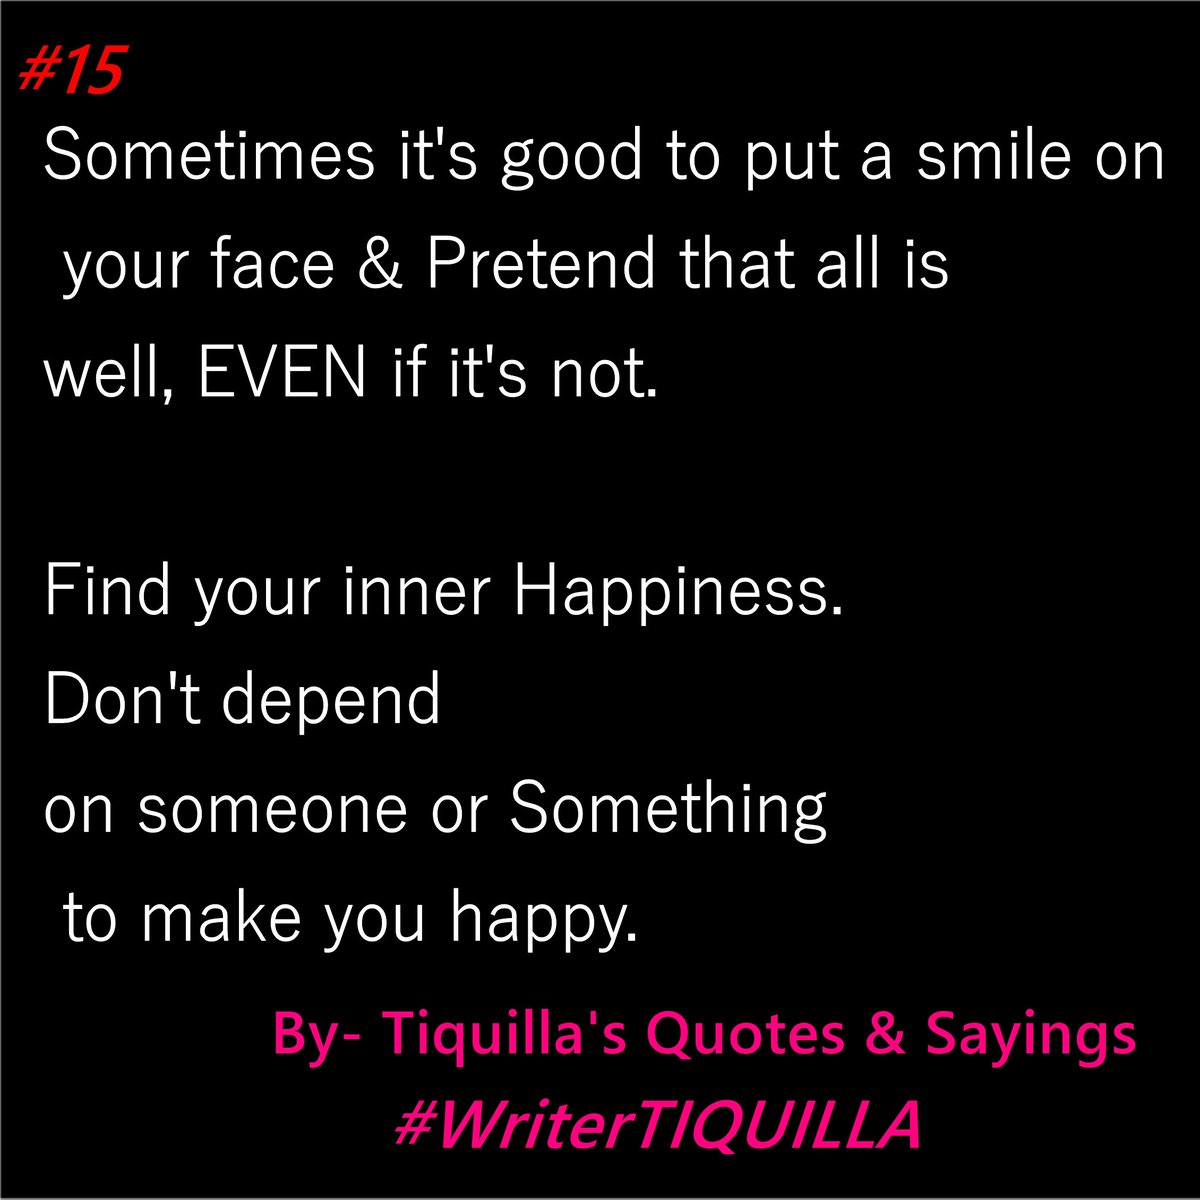 Saying Quotes T's Quotes & Sayings Writertiquilla  Twitter